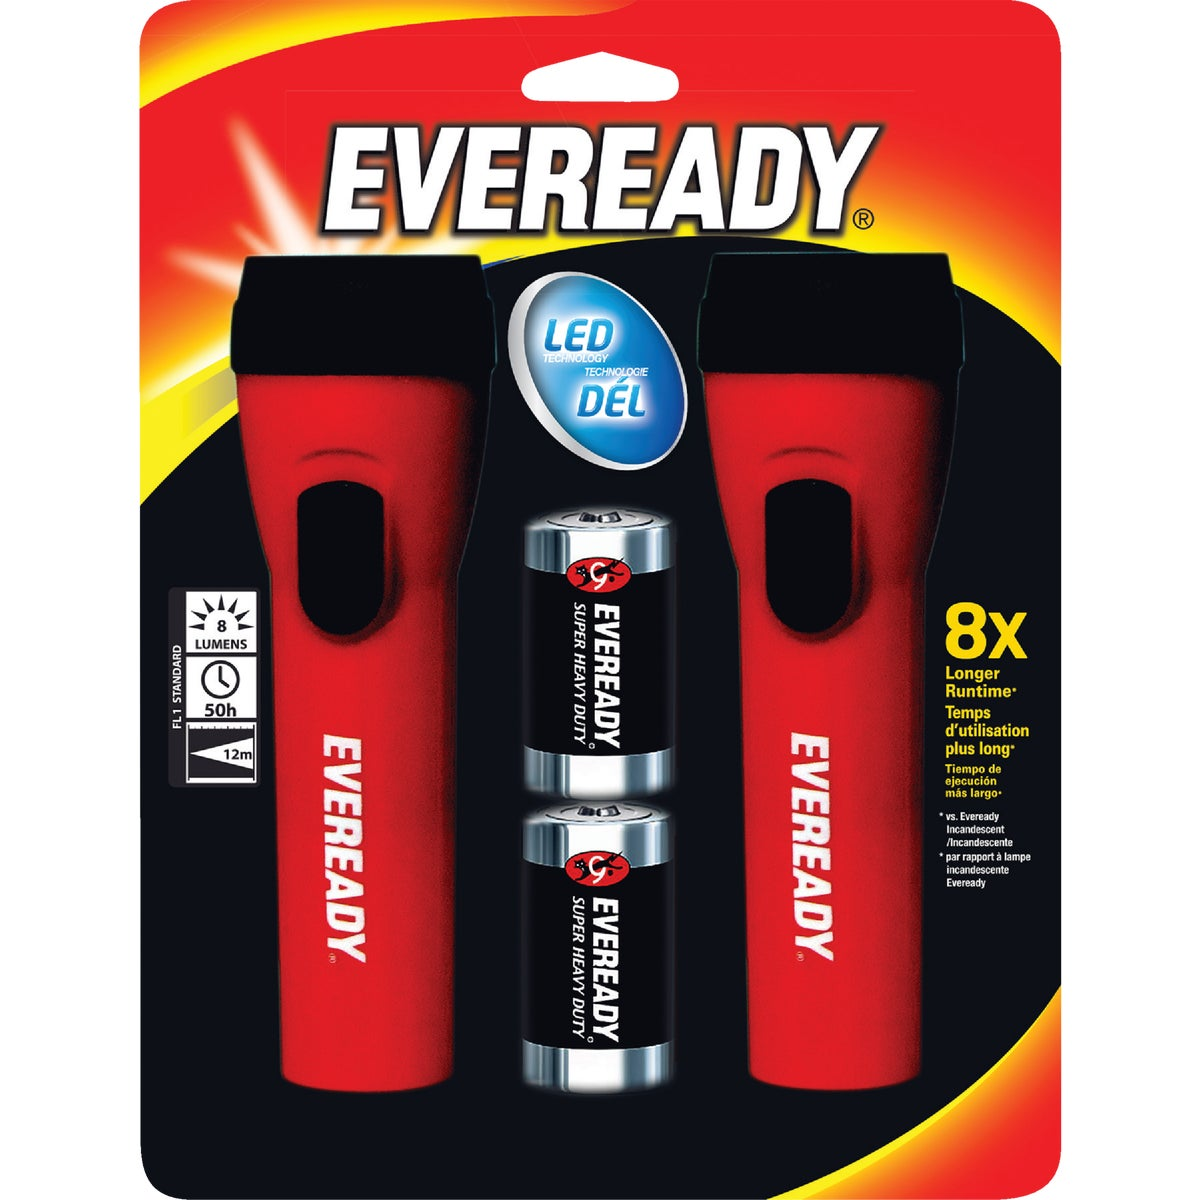 LED W/BATTERY FLASHLIGHT - 3151L2S by Energizer